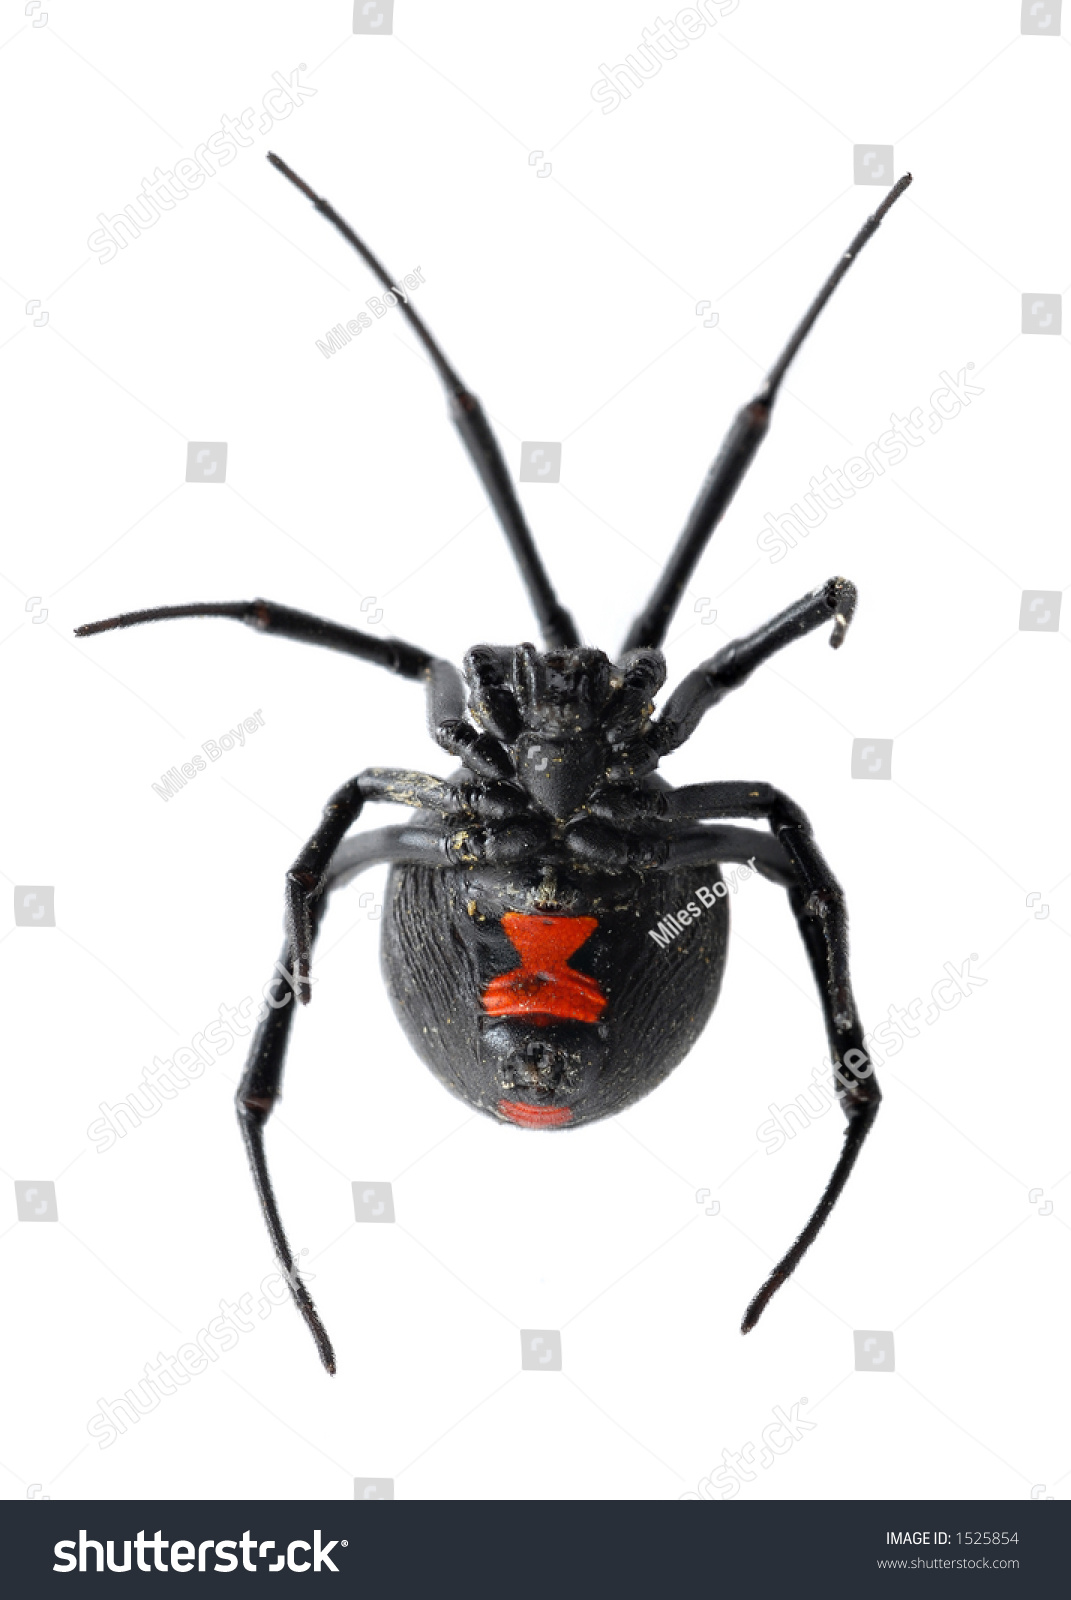 Black Widow Spider Isolated On White Stock Photo 1525854 ...